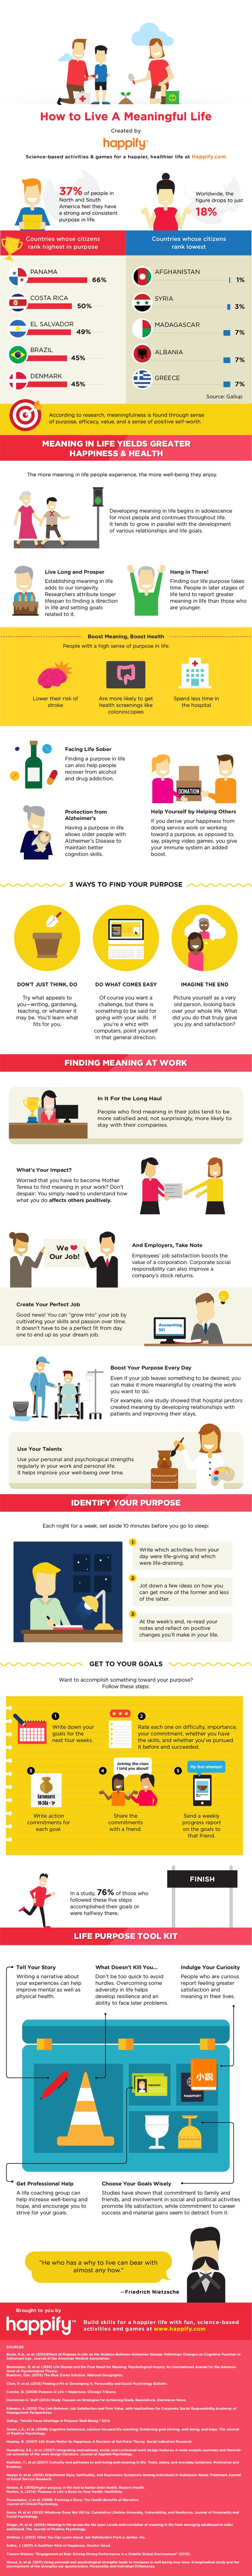 Psychology-Infographic-Discover-new-TIPS-Discover-new-TIPS-Published-by-Happify-™-Original-sou Psychology Infographic : This Is How You Can Start Crafting a More Meaningful Life for Yourself Today